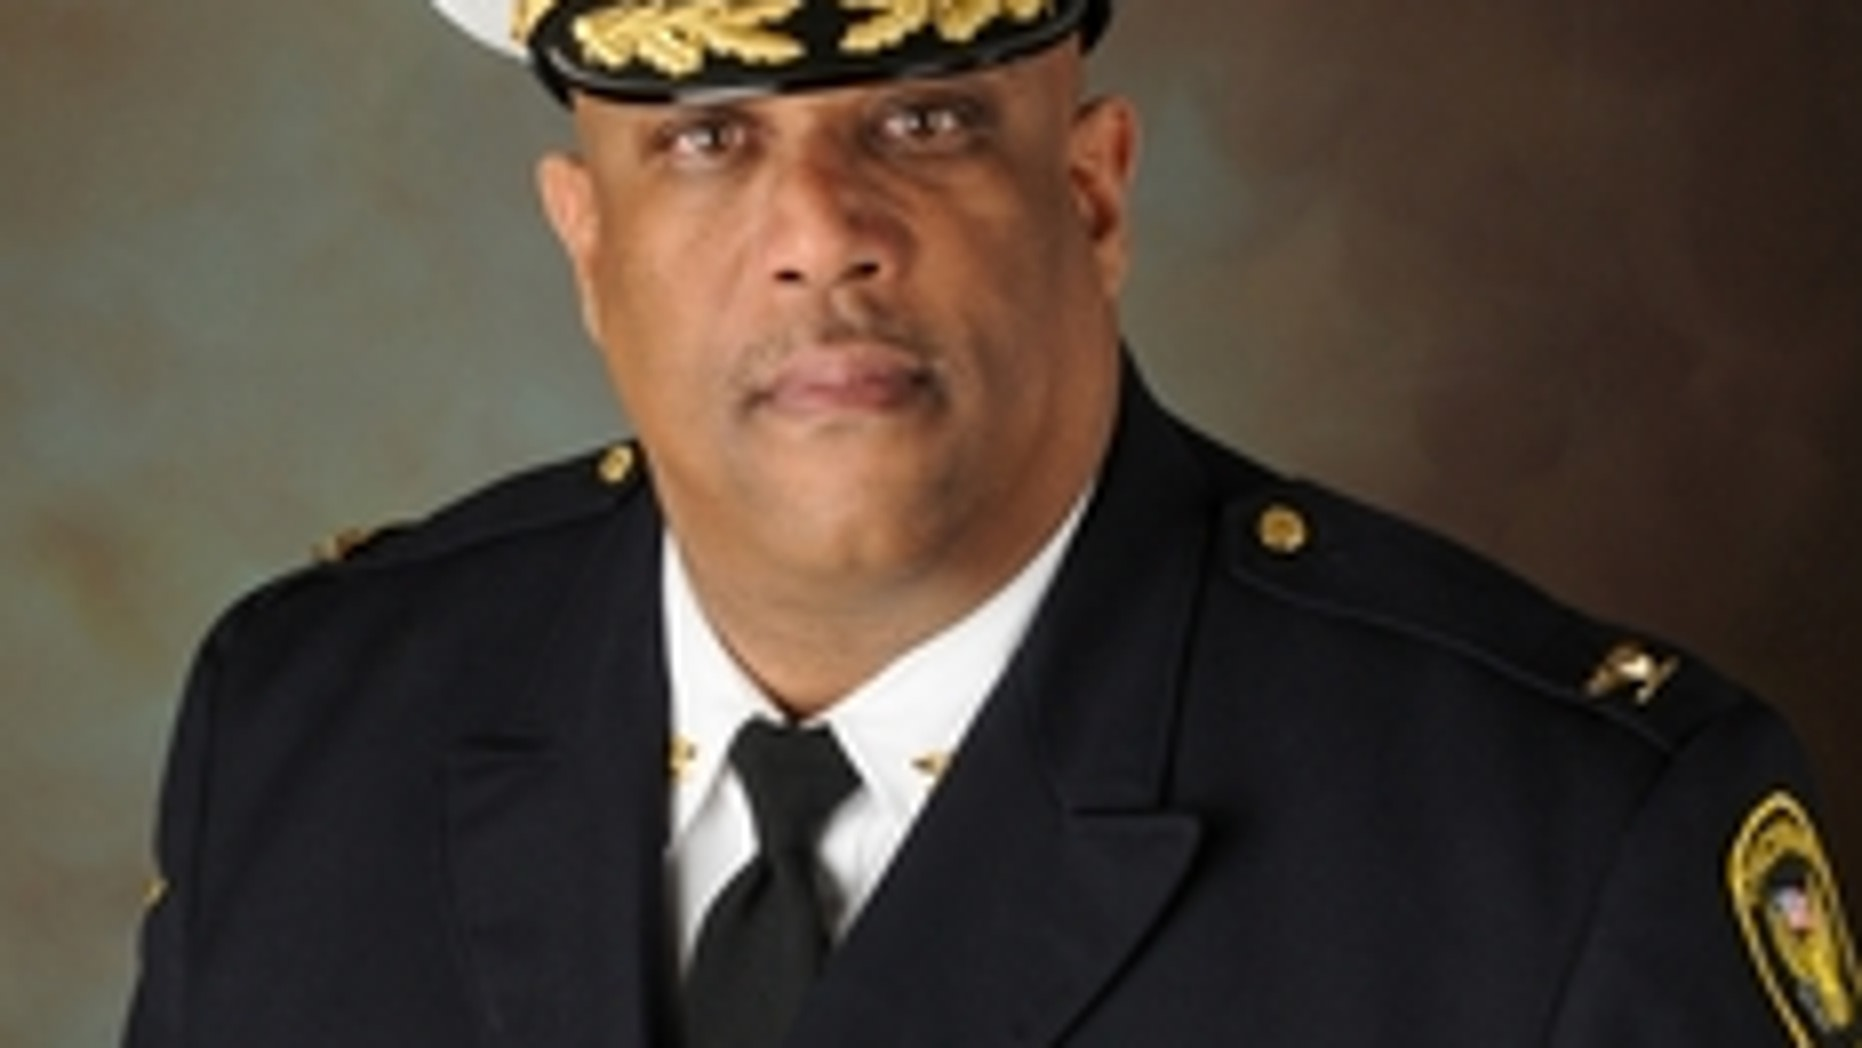 Cincinnati Police Chief Eliot Isaac had his personal information released in an Anonymous data dump.